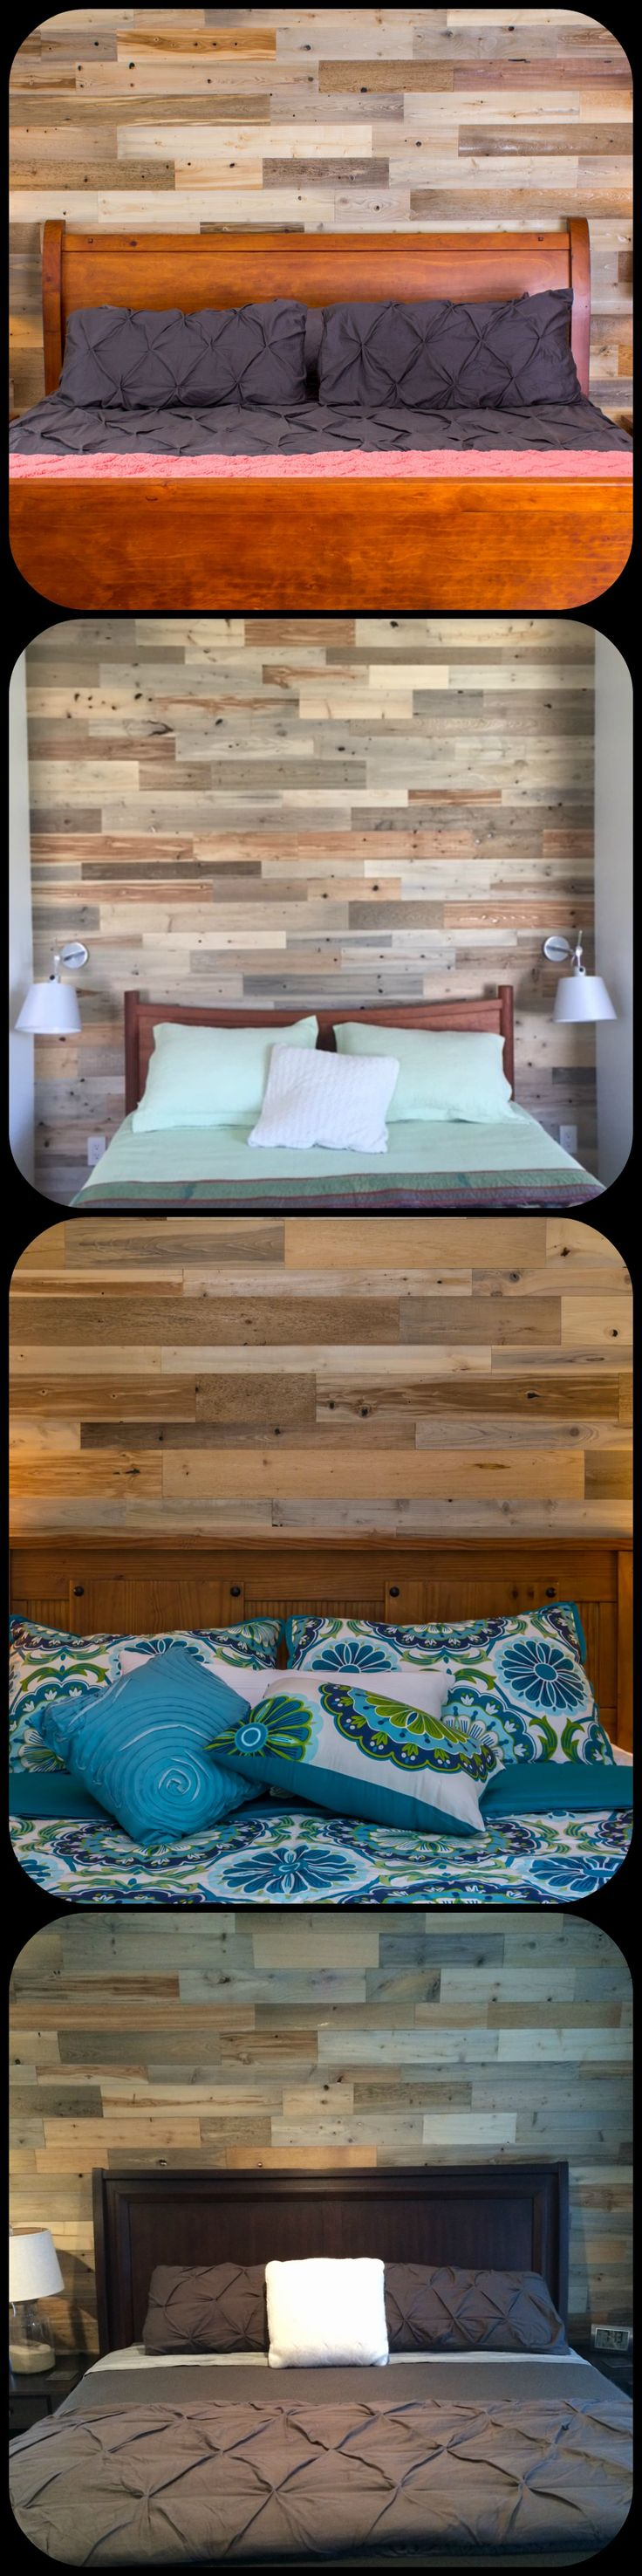 Bedroom Accent Wall Created Using Timberchic Our Customers Did Wonderful Jobs On These Walls